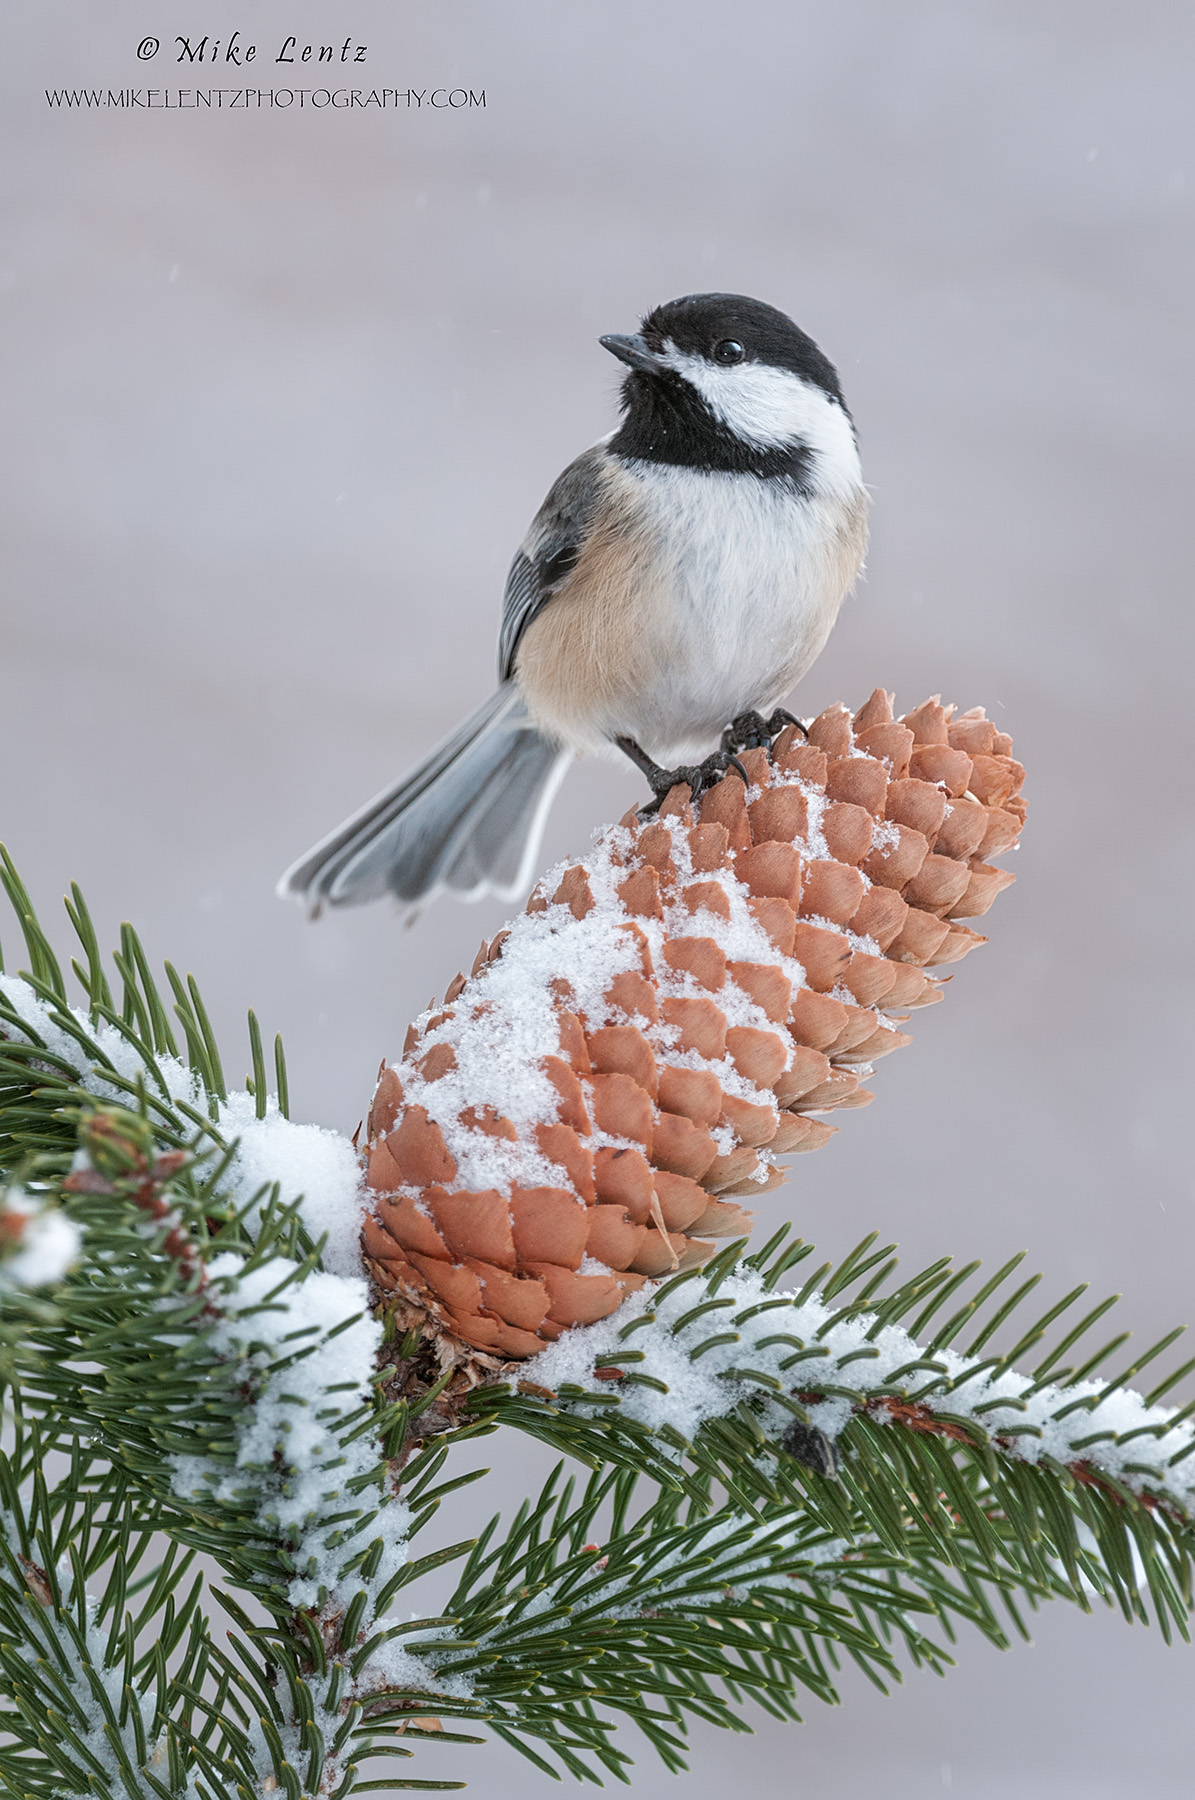 Black capped chickadee on large pine cone